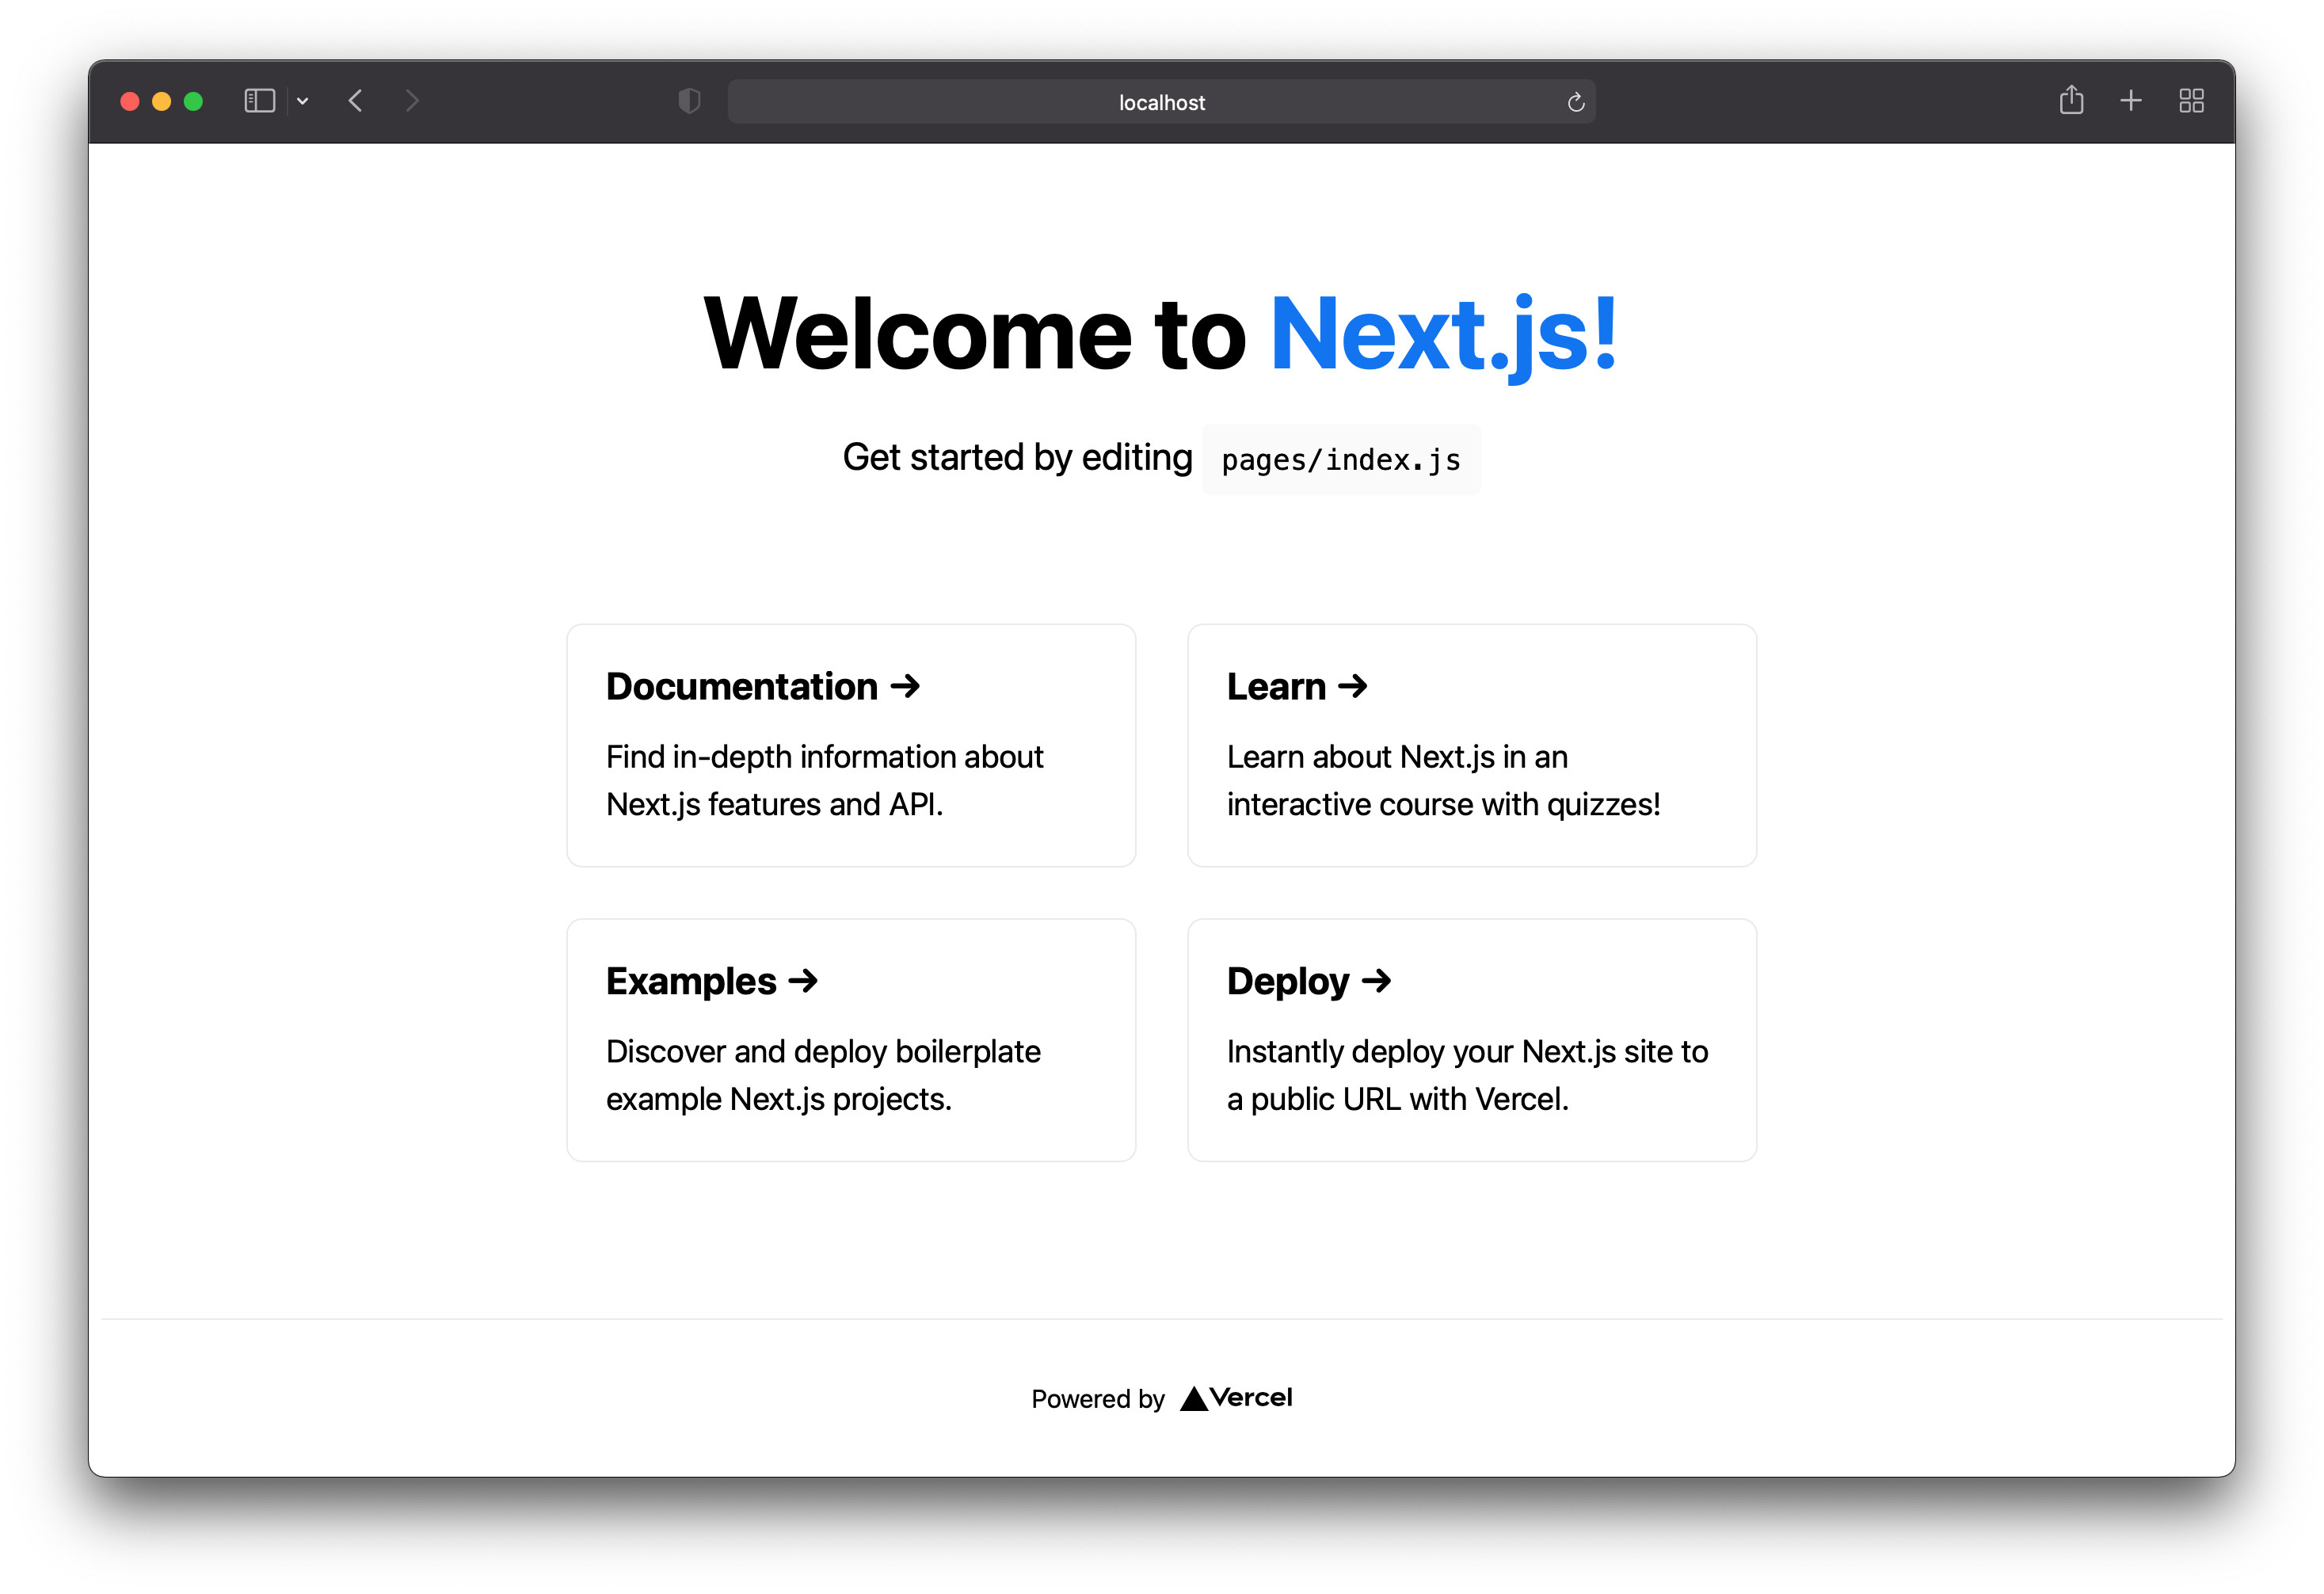 images/how-to-add-authentication-nextjs-telmo.jpg